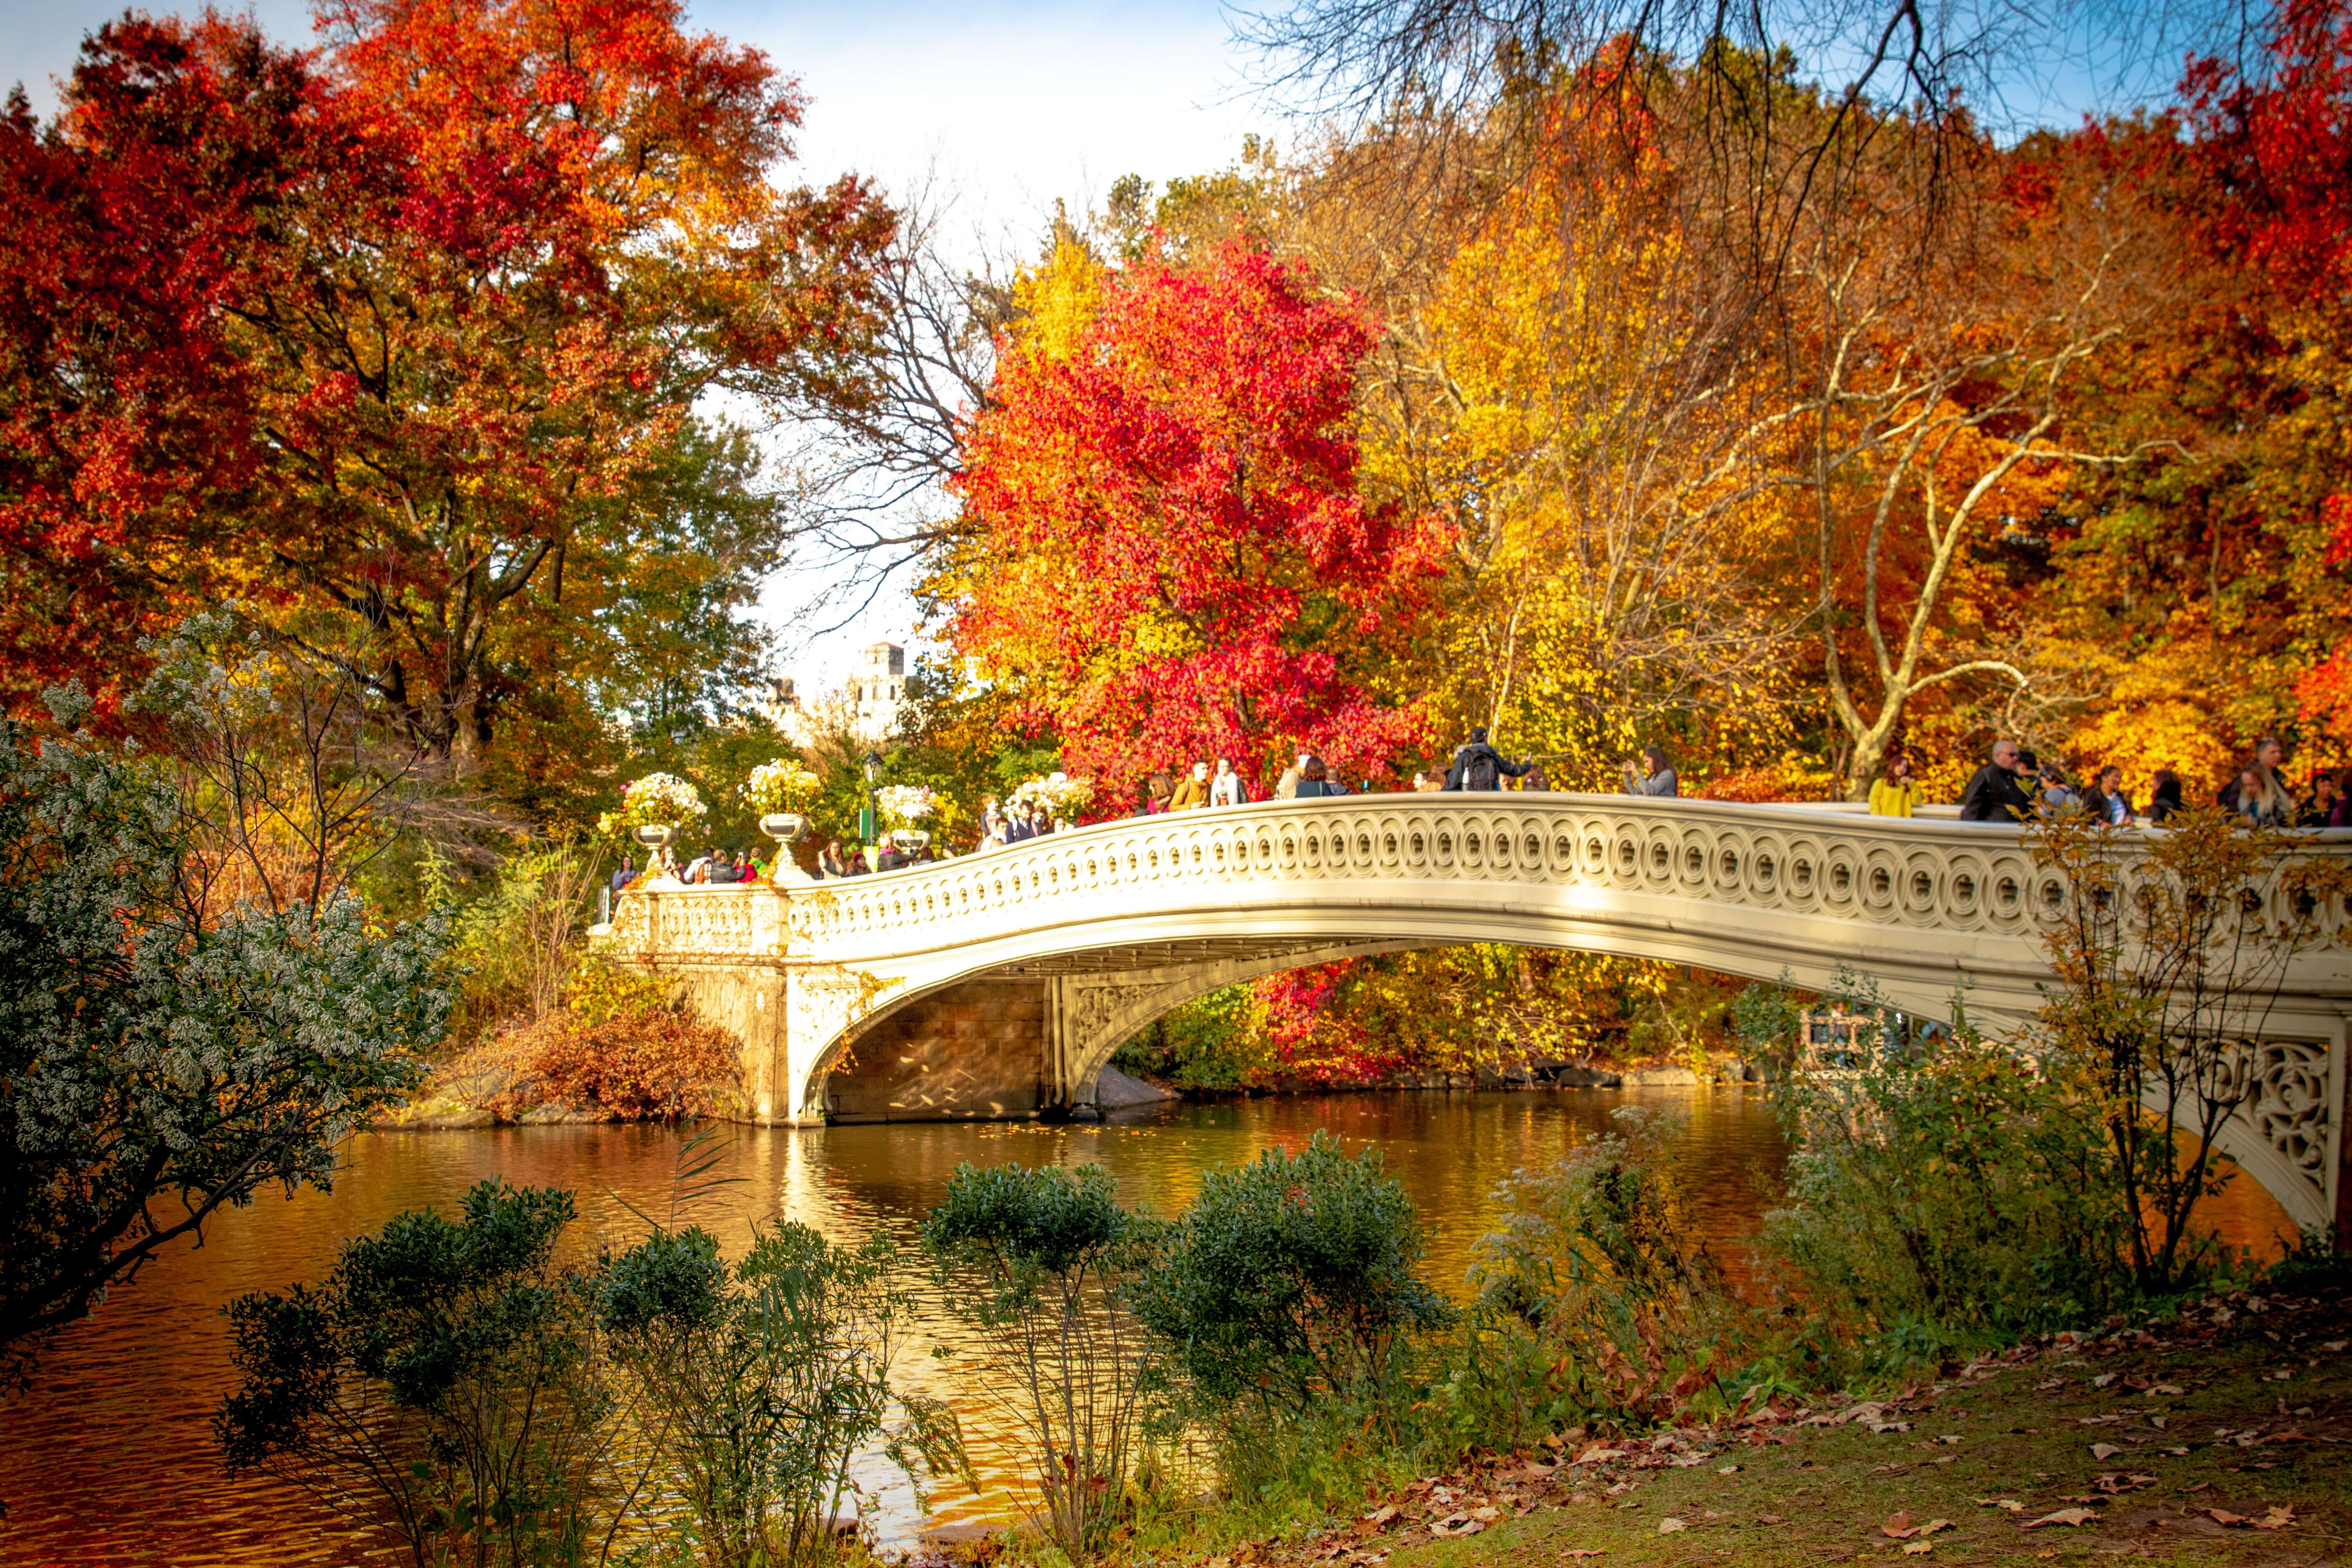 Leaves changing color in a park with a bridge